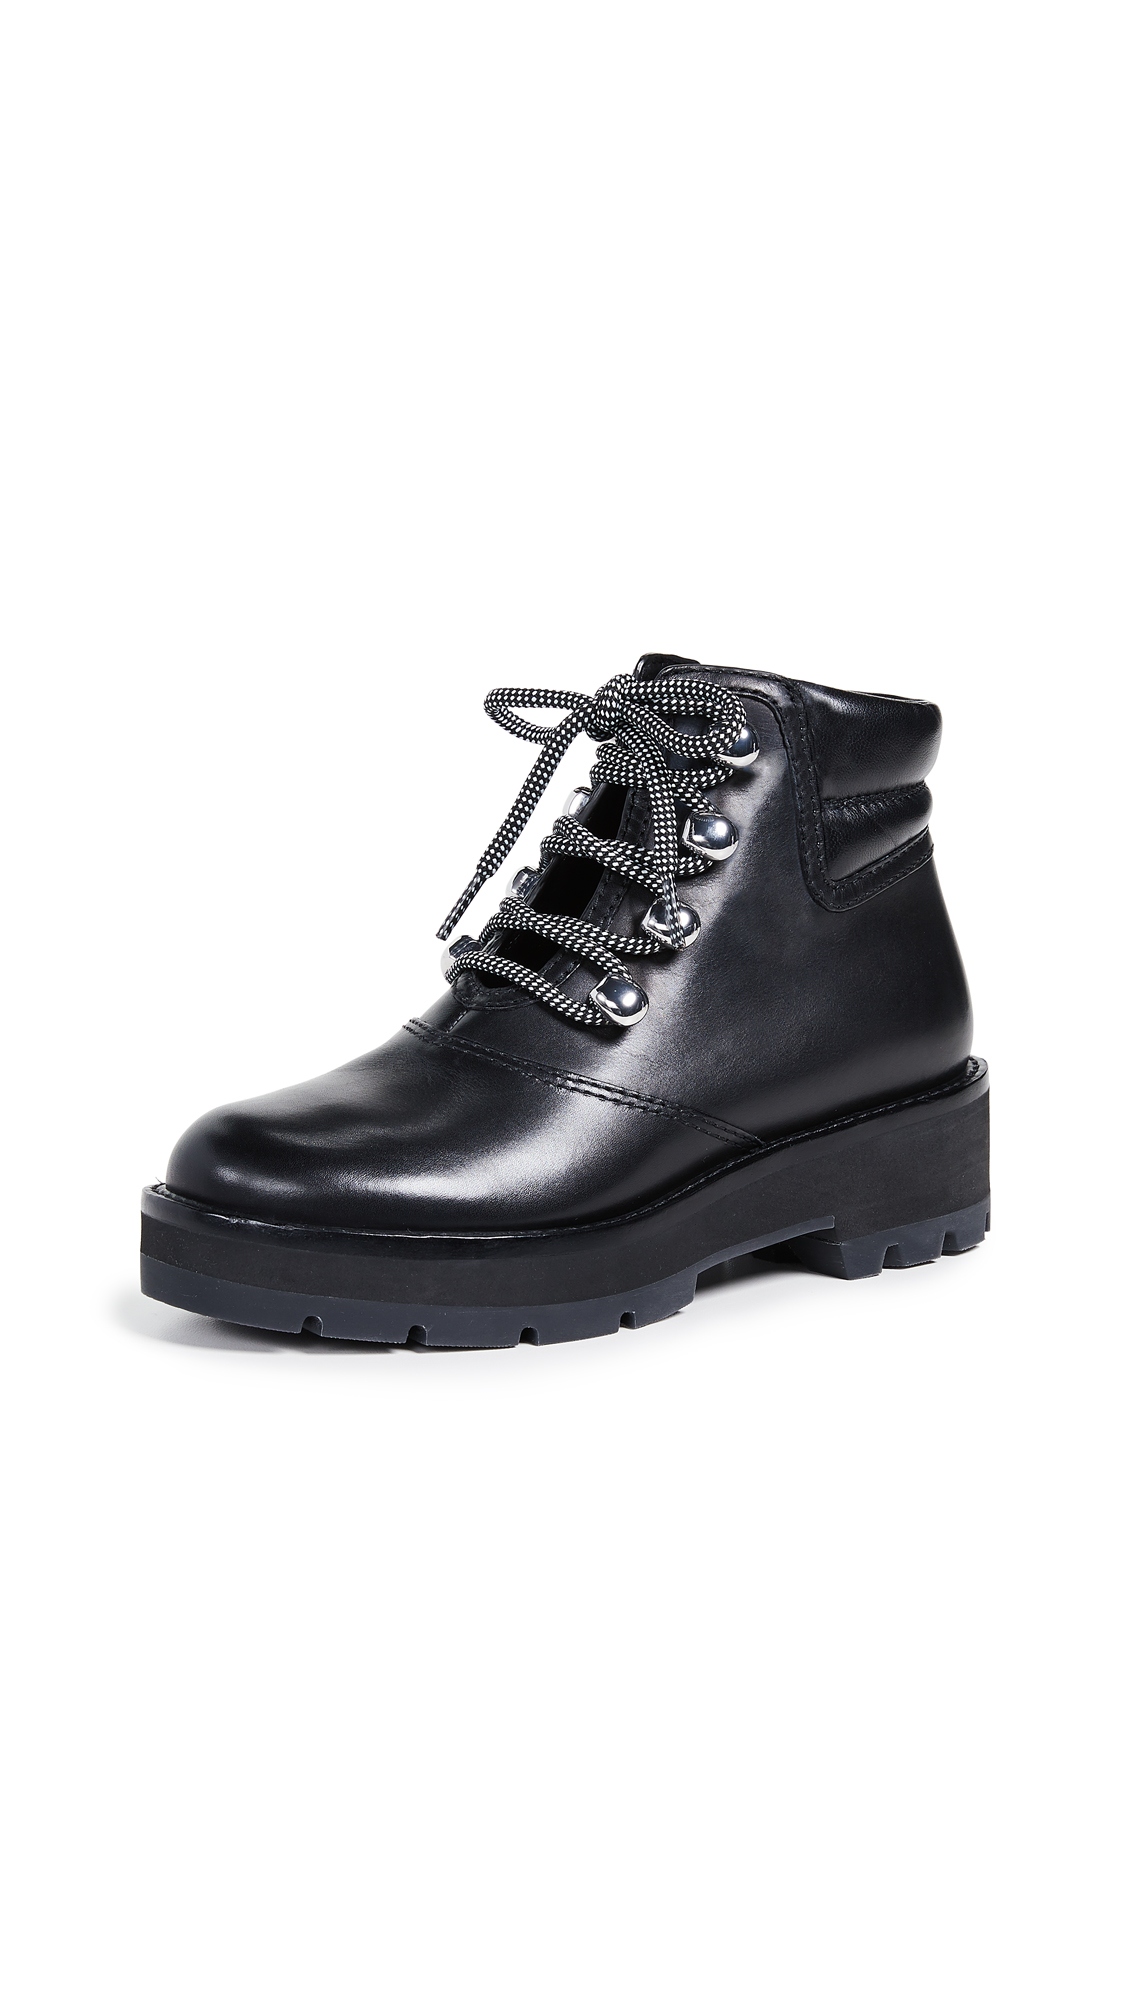 3.1 Phillip Lim Dylan Hiking Booties - Black